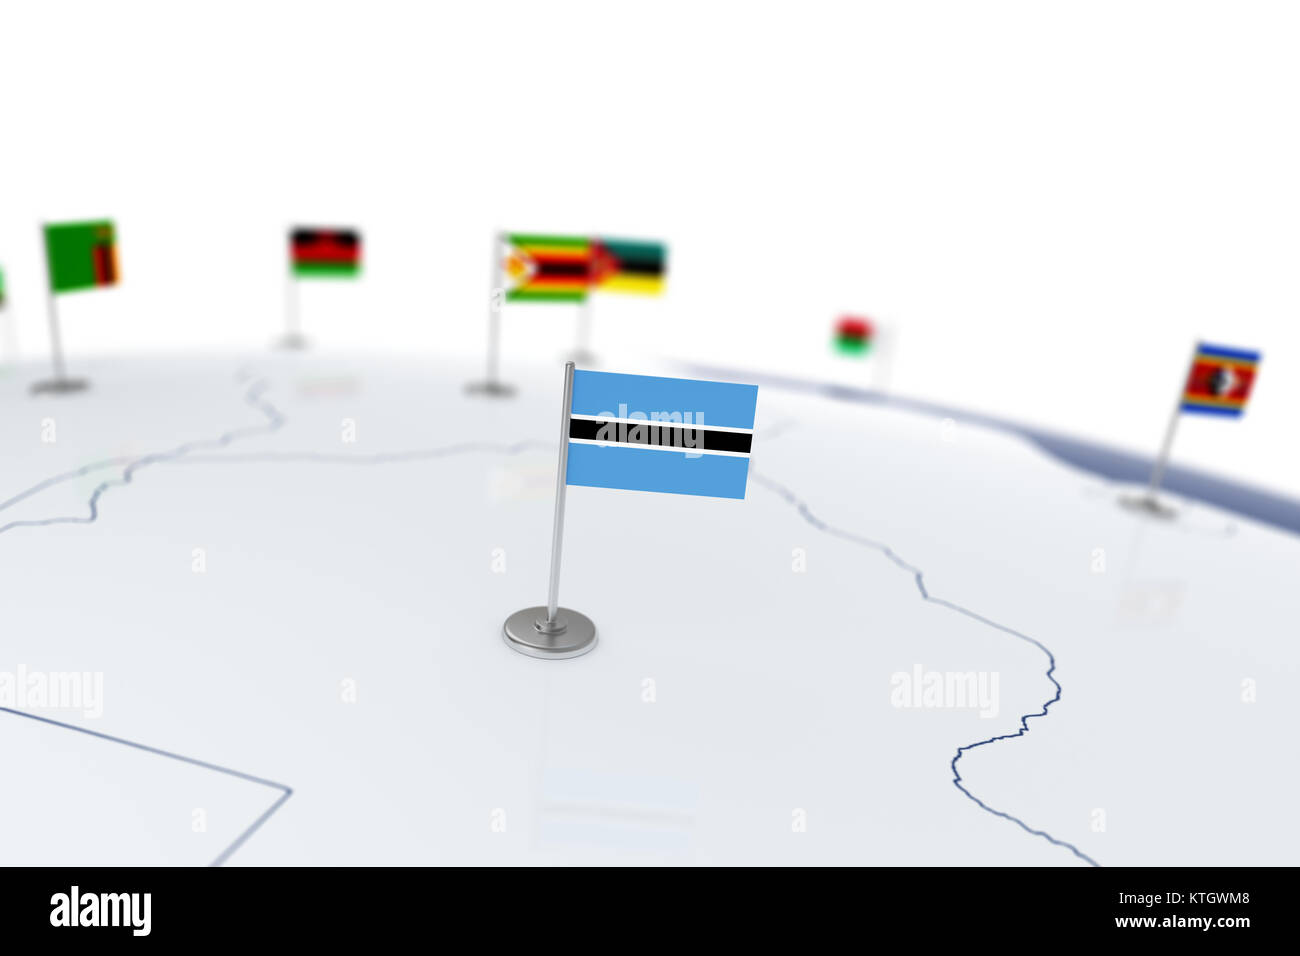 Botswana flag country flag with chrome flagpole on the world map botswana flag country flag with chrome flagpole on the world map with neighbors countries borders 3d illustration rendering gumiabroncs Image collections